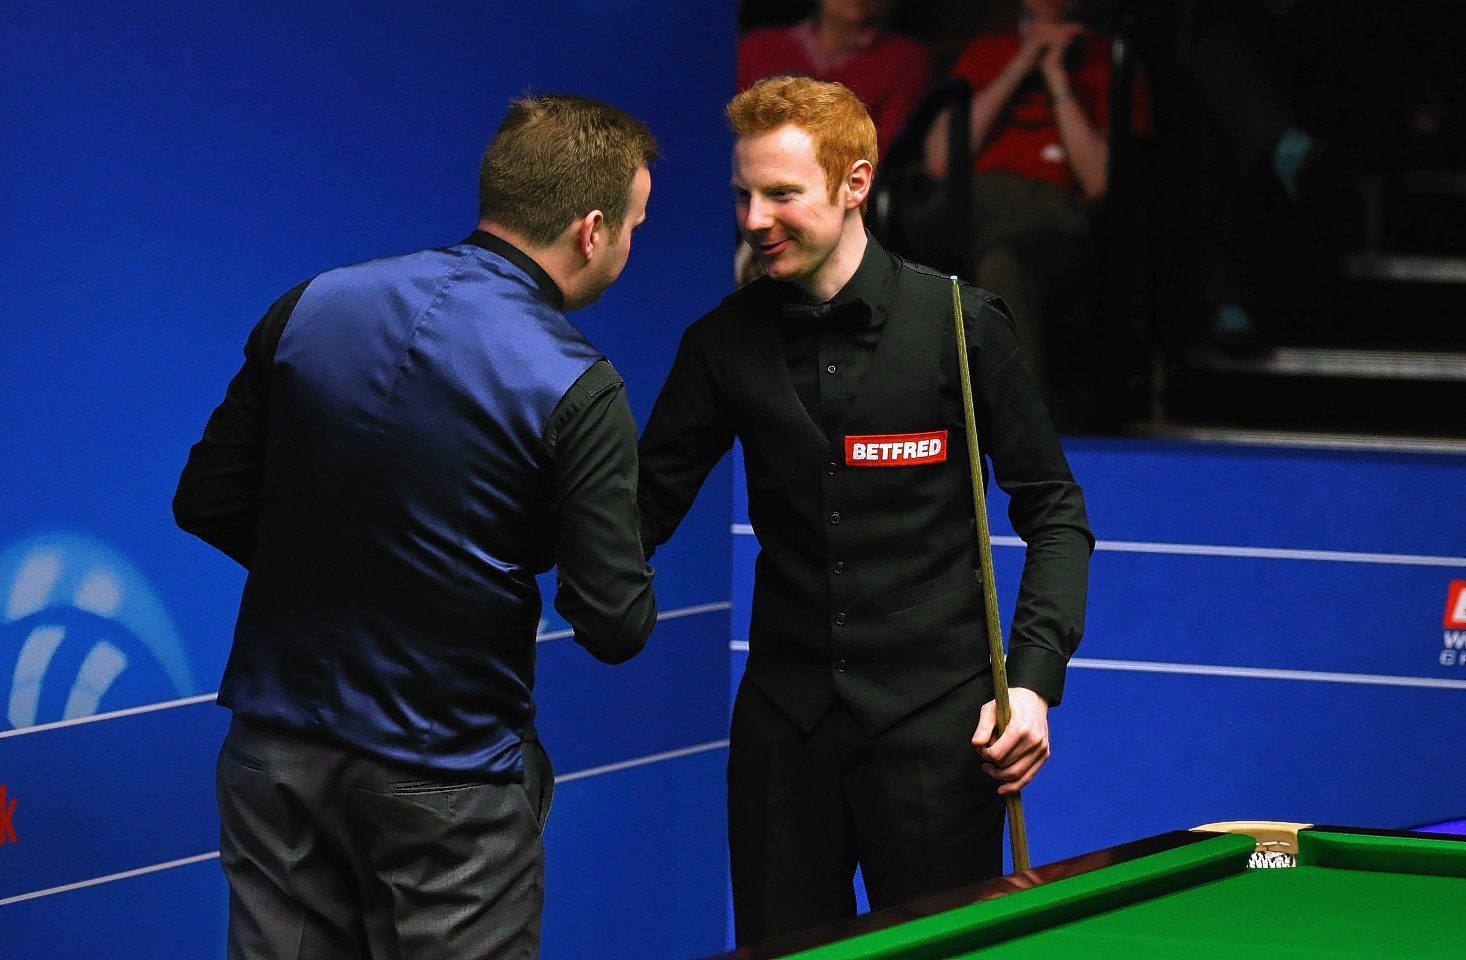 Shaun Murphy shakes hands with Anthony McGill